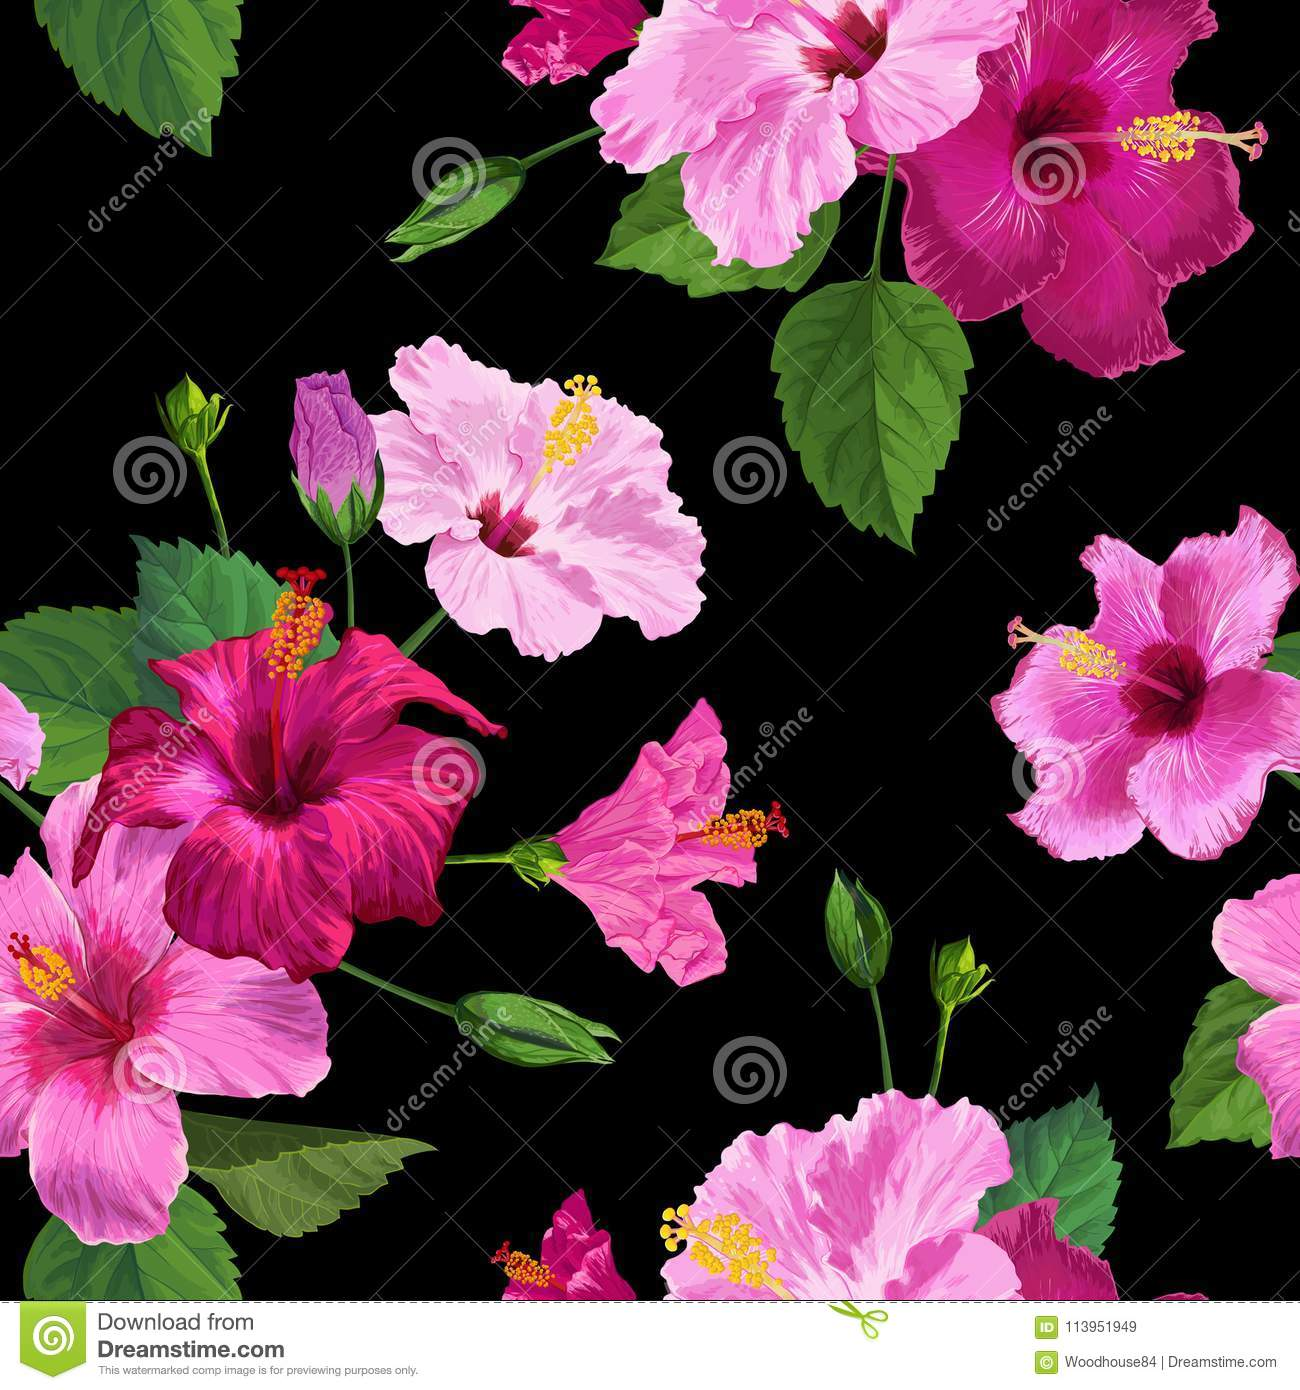 tropical pink hibiscus flower seamless pattern. floral summer